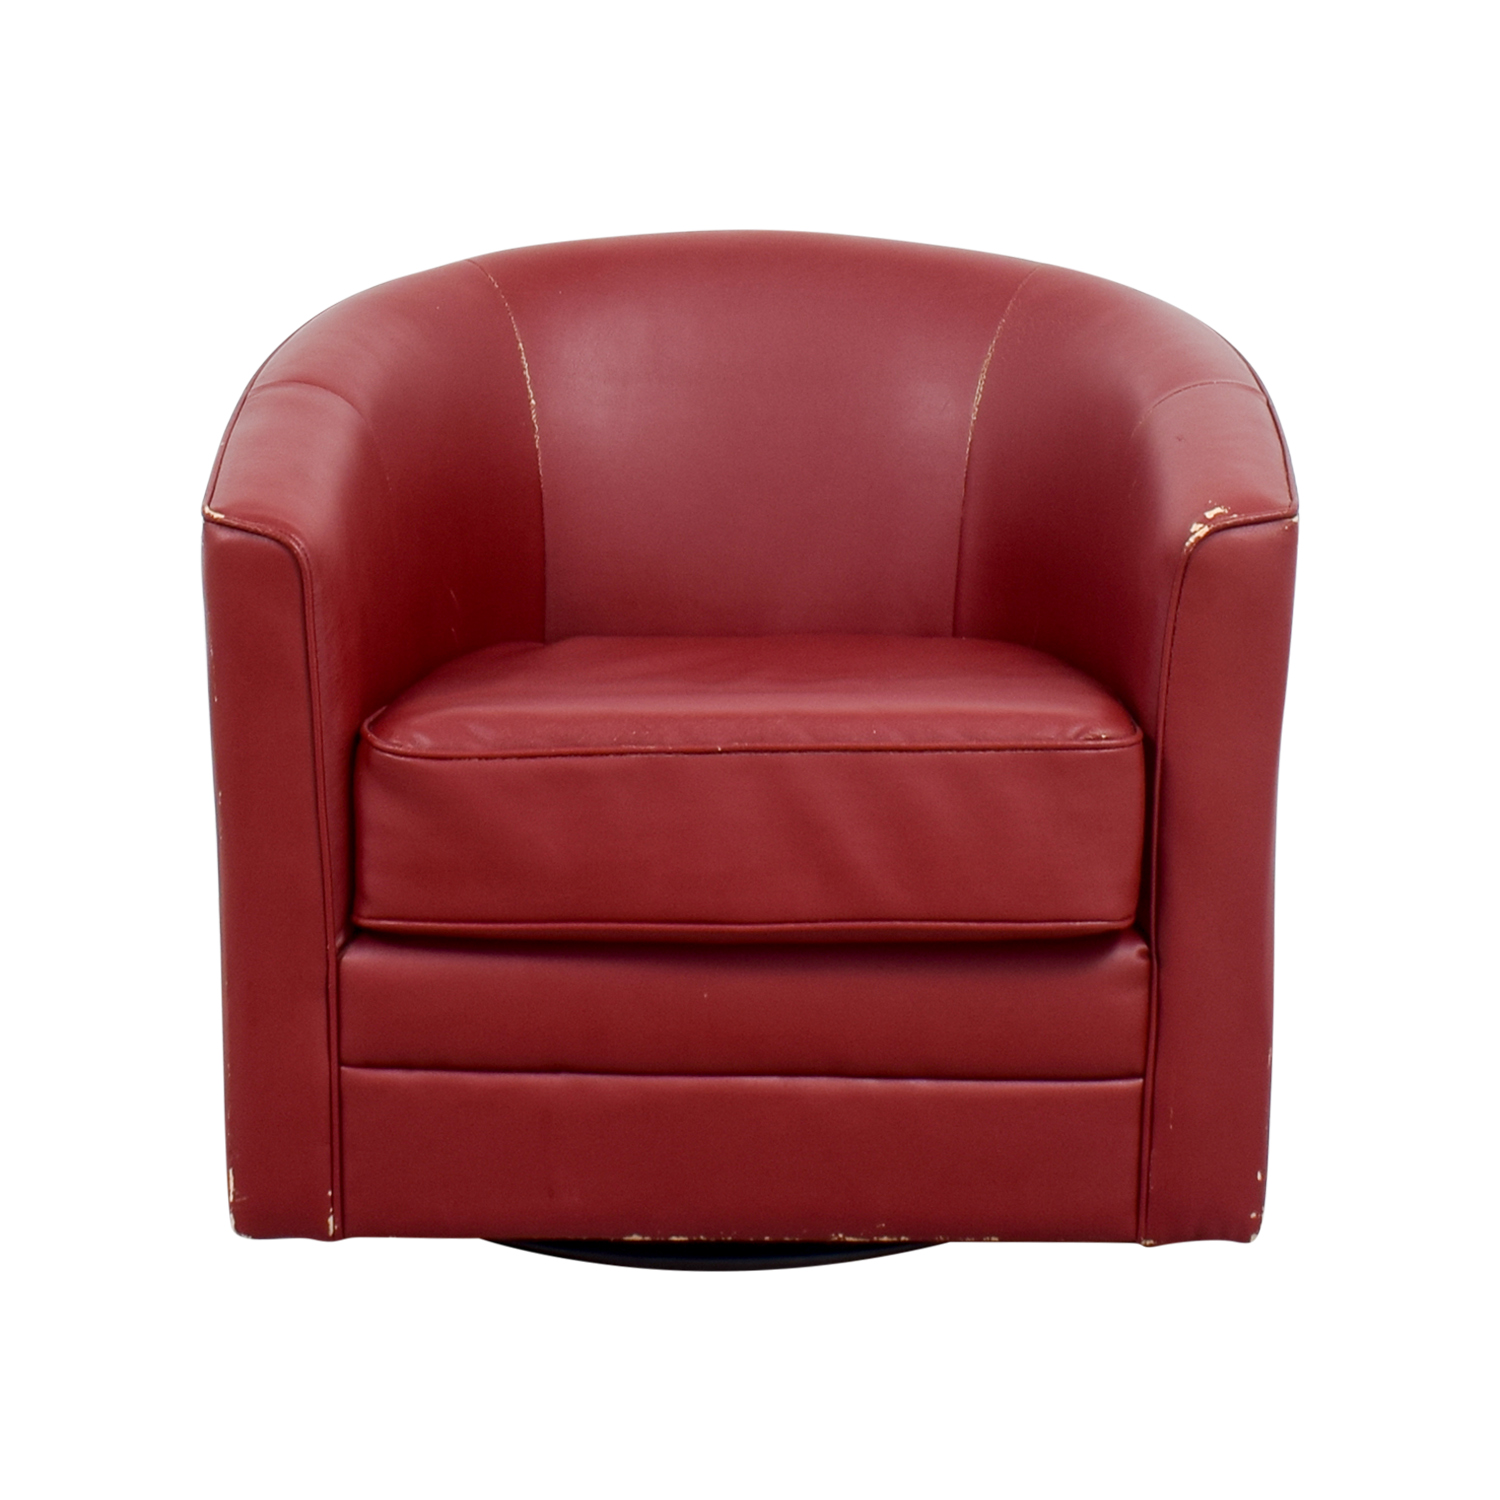 90 OFF  Bobs Discount Furniture Bobs Furniture Red